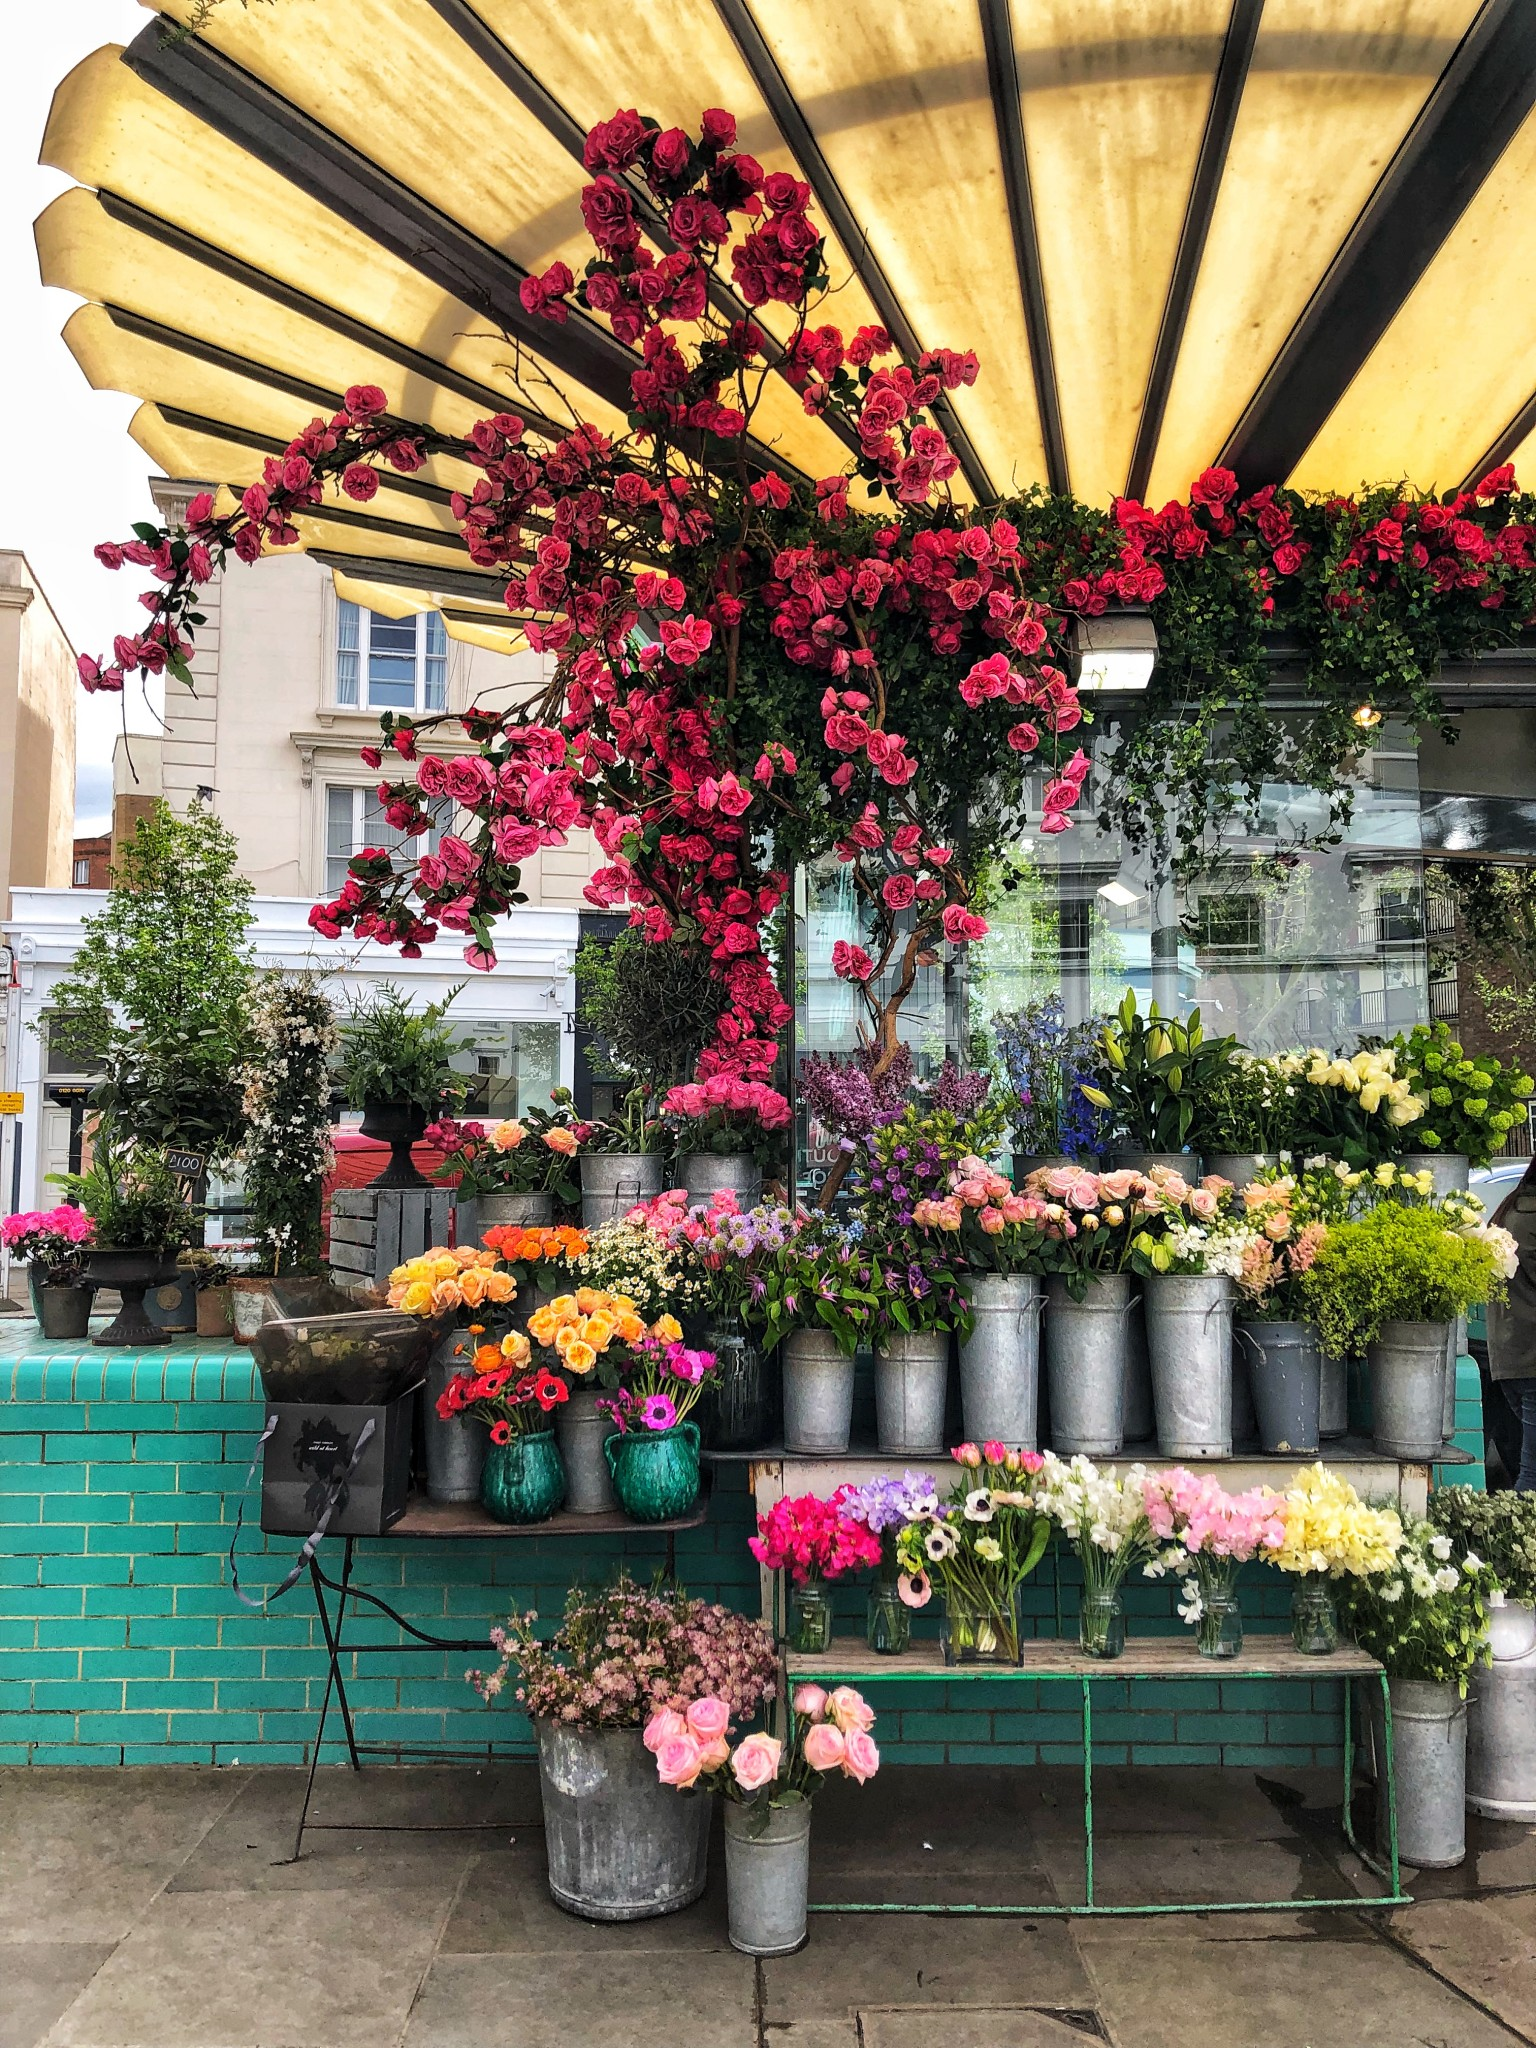 notting hill westbourne grove, most instagrammable places in london, the-alyst.com